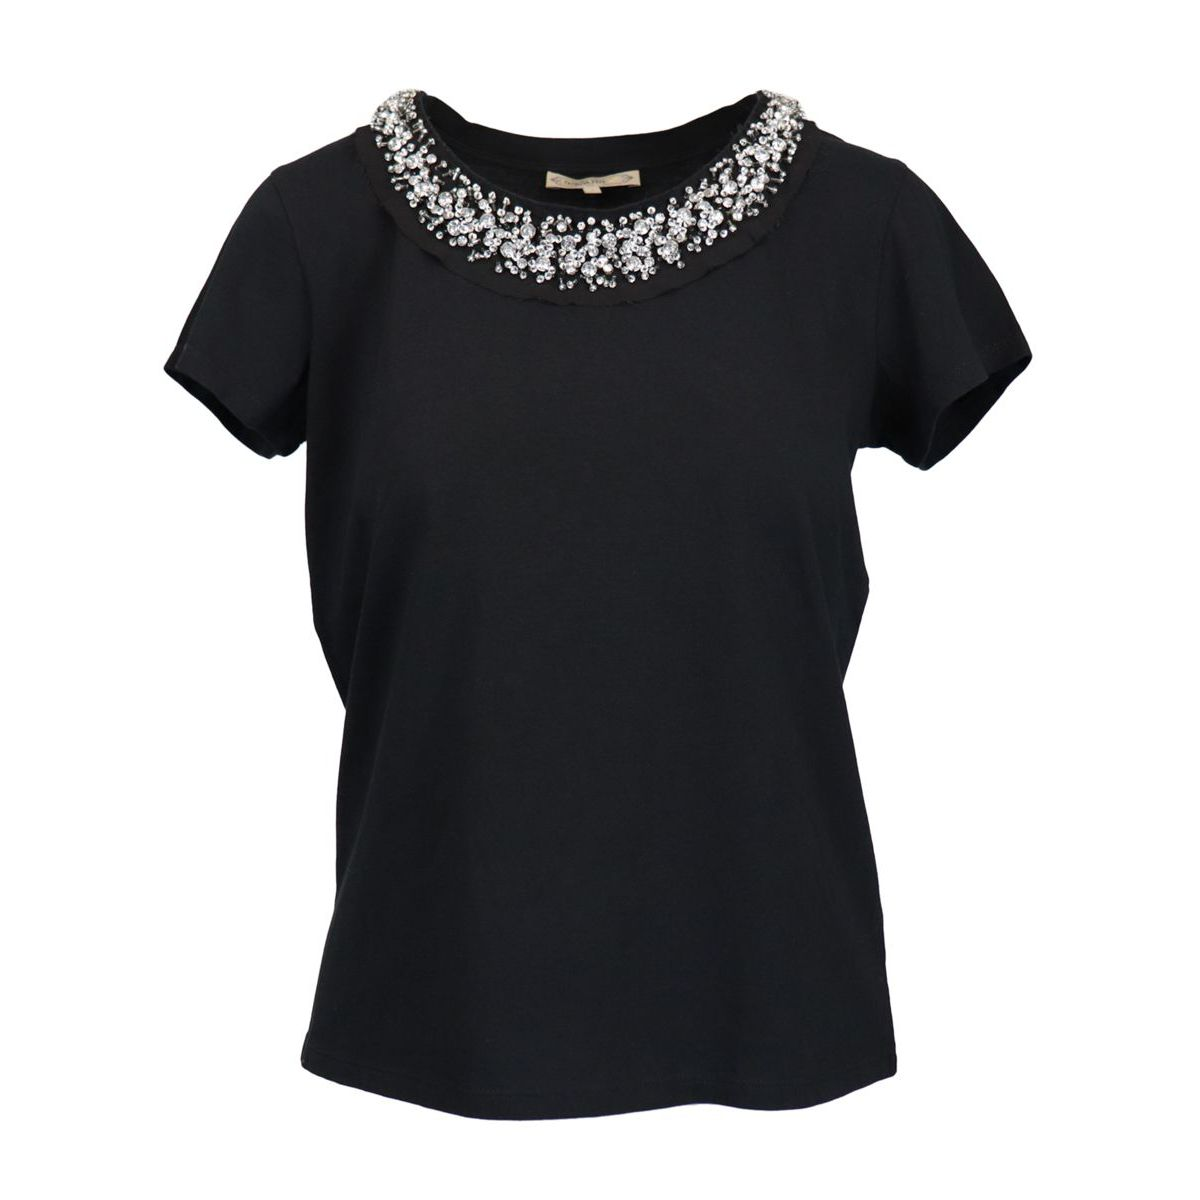 Short-sleeved cotton T-shirt with beads and rhinestones on the crew neck Black Patrizia Pepe